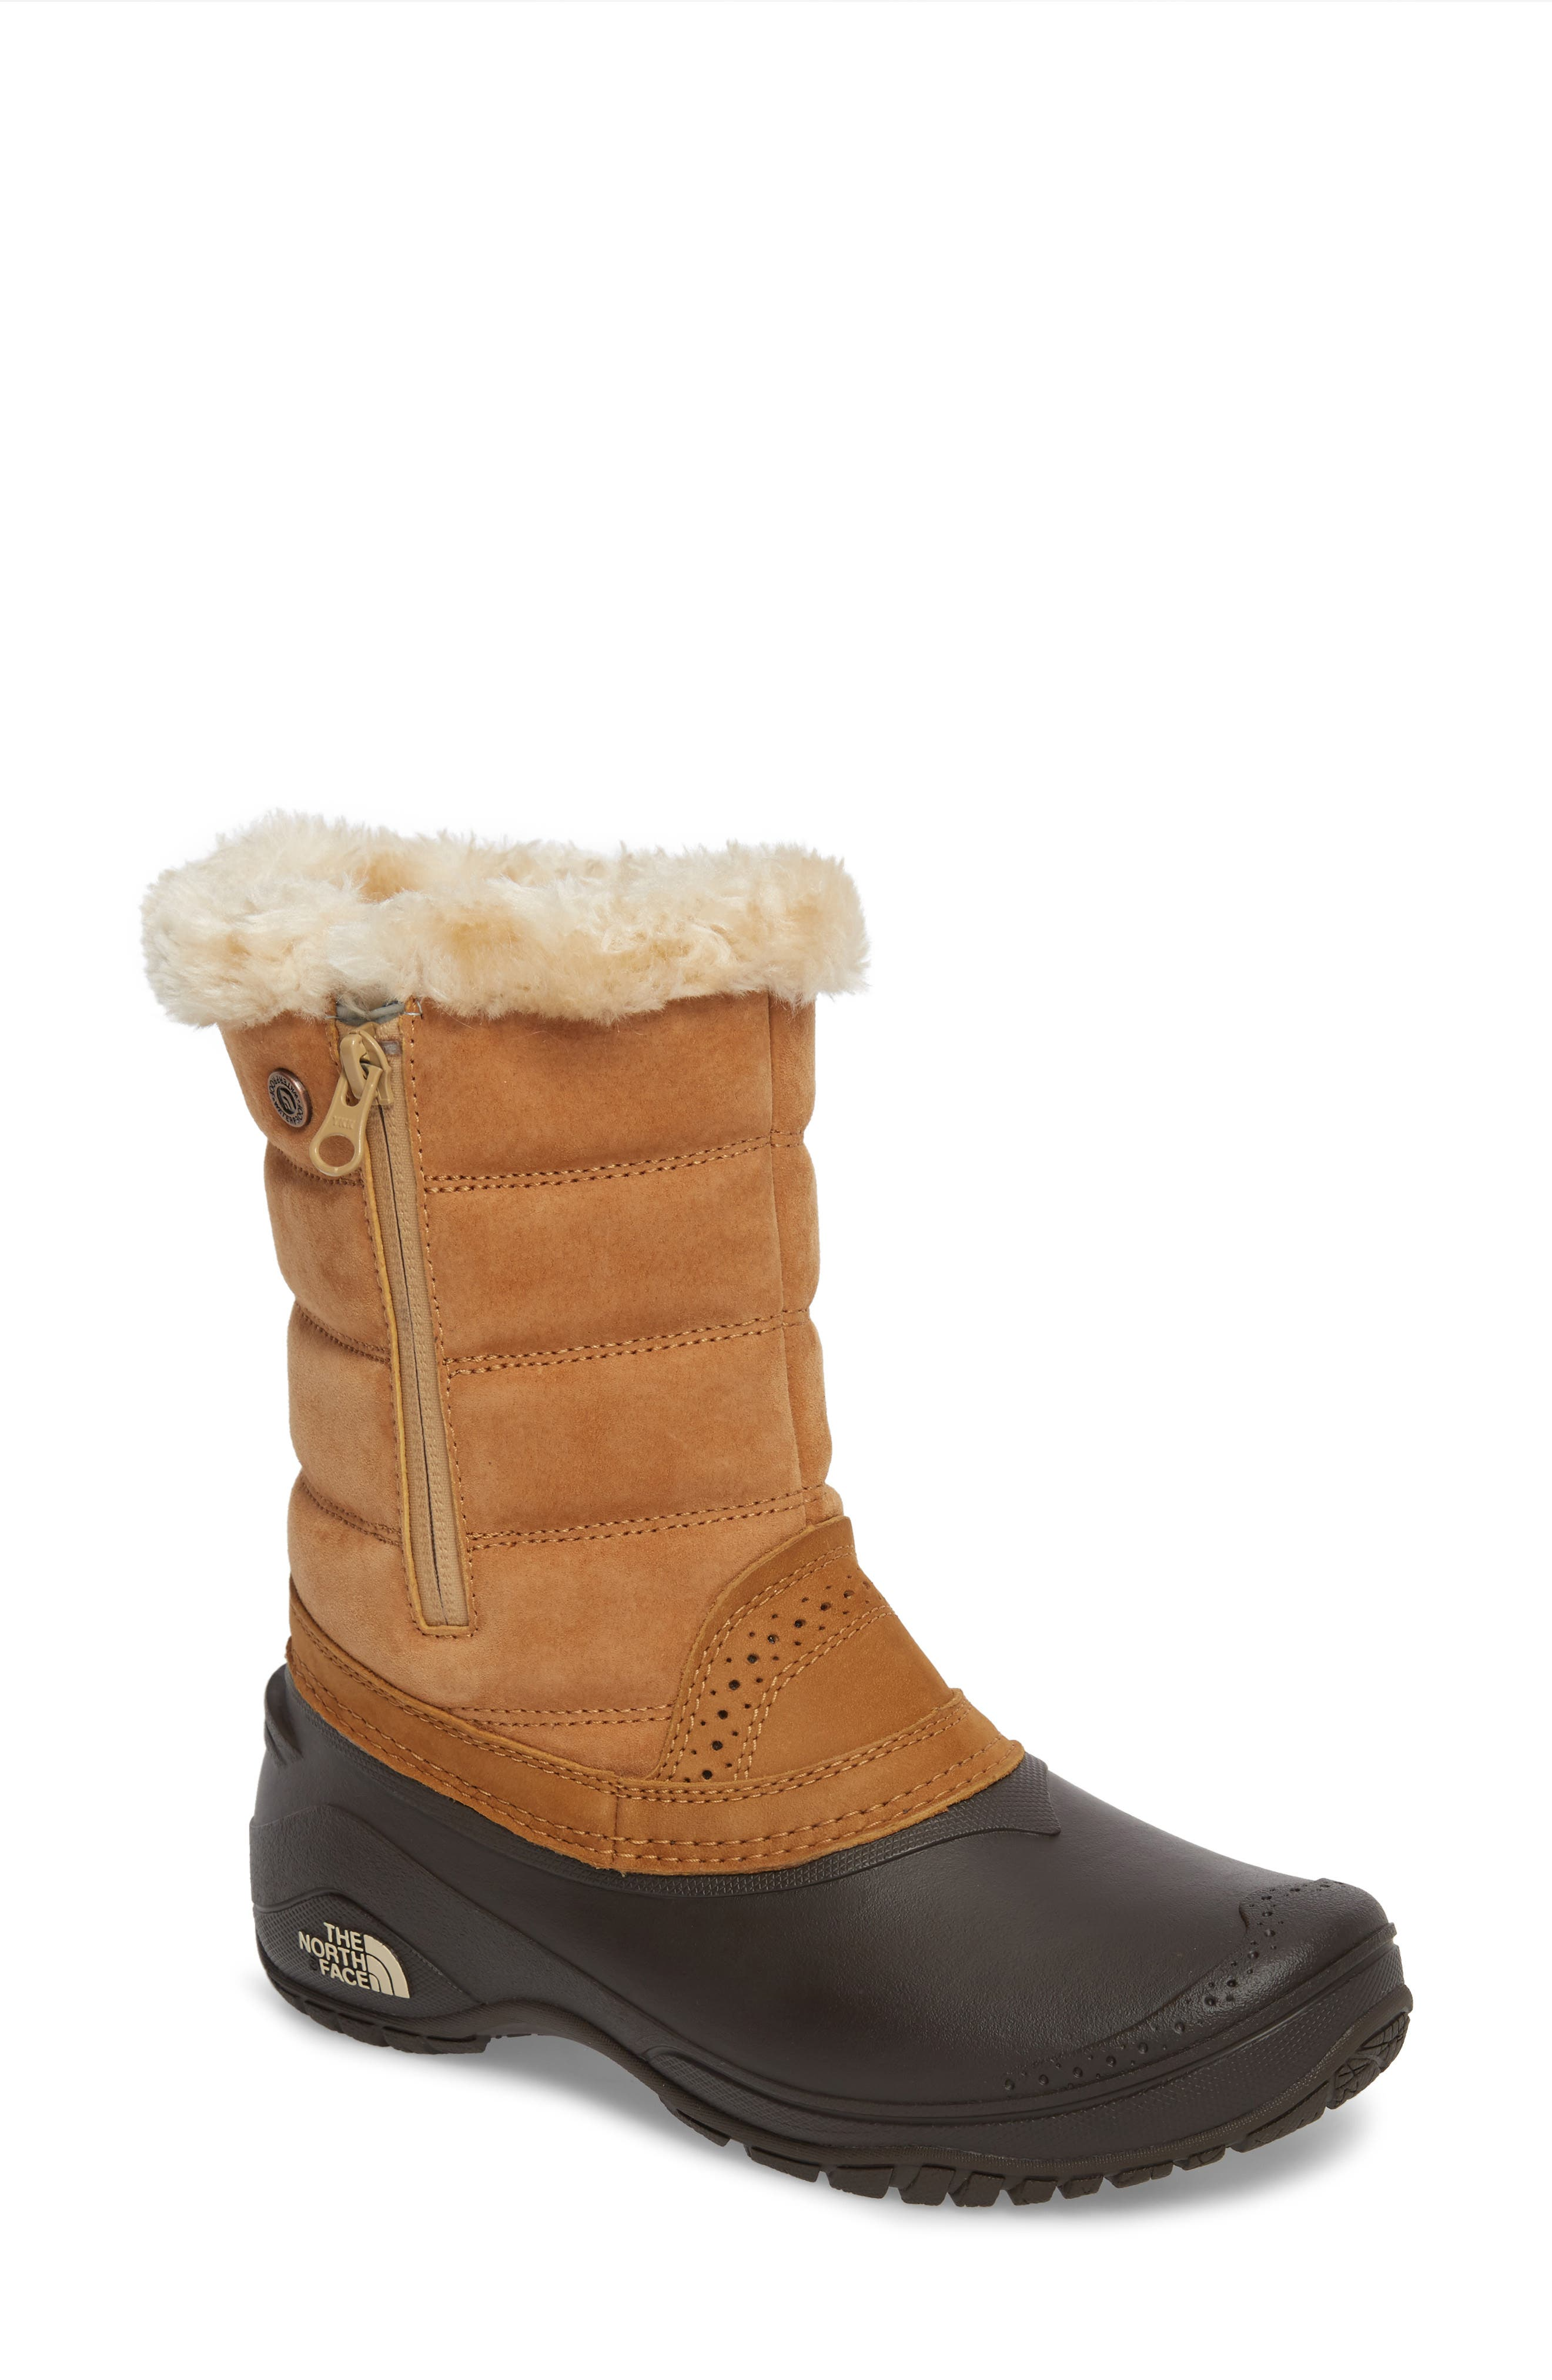 Main Image - The North Face Shellista III Waterproof Pull-On Snow Boot (Women)